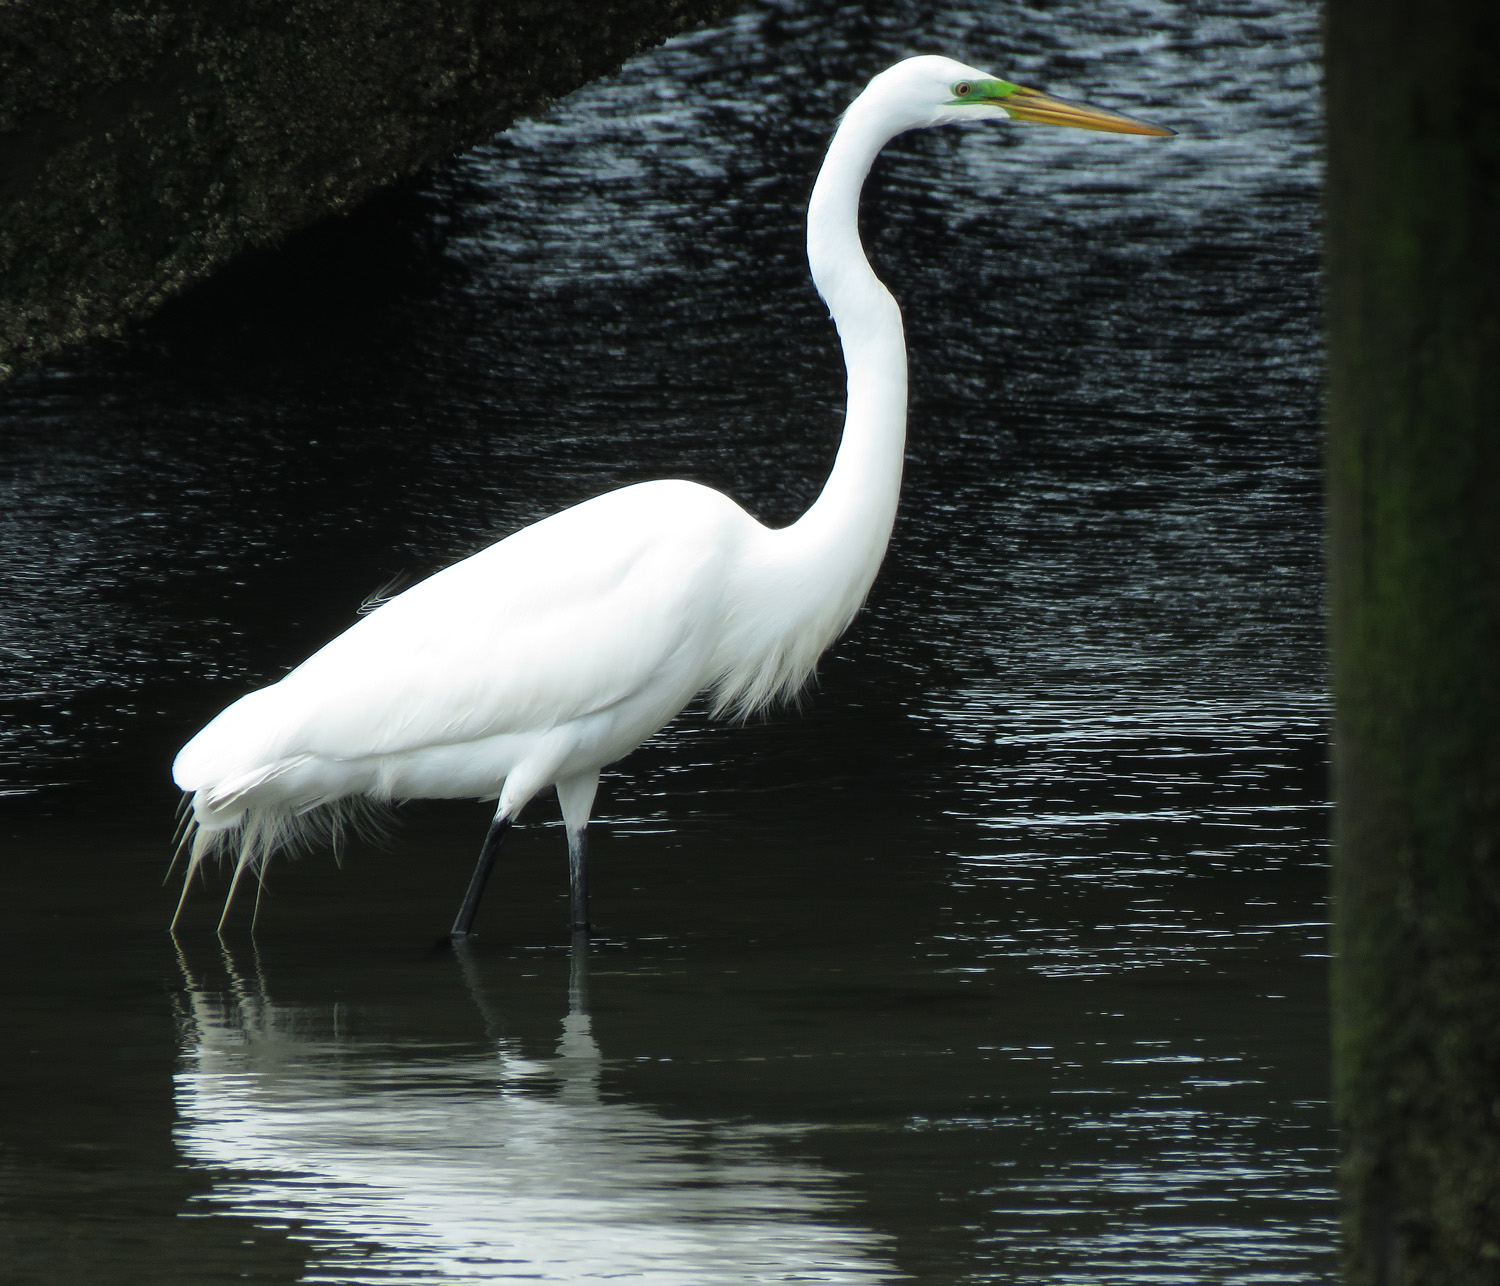 Great egret, at the marine near the Lido Beach Passive Nature Area, May 17, 2019